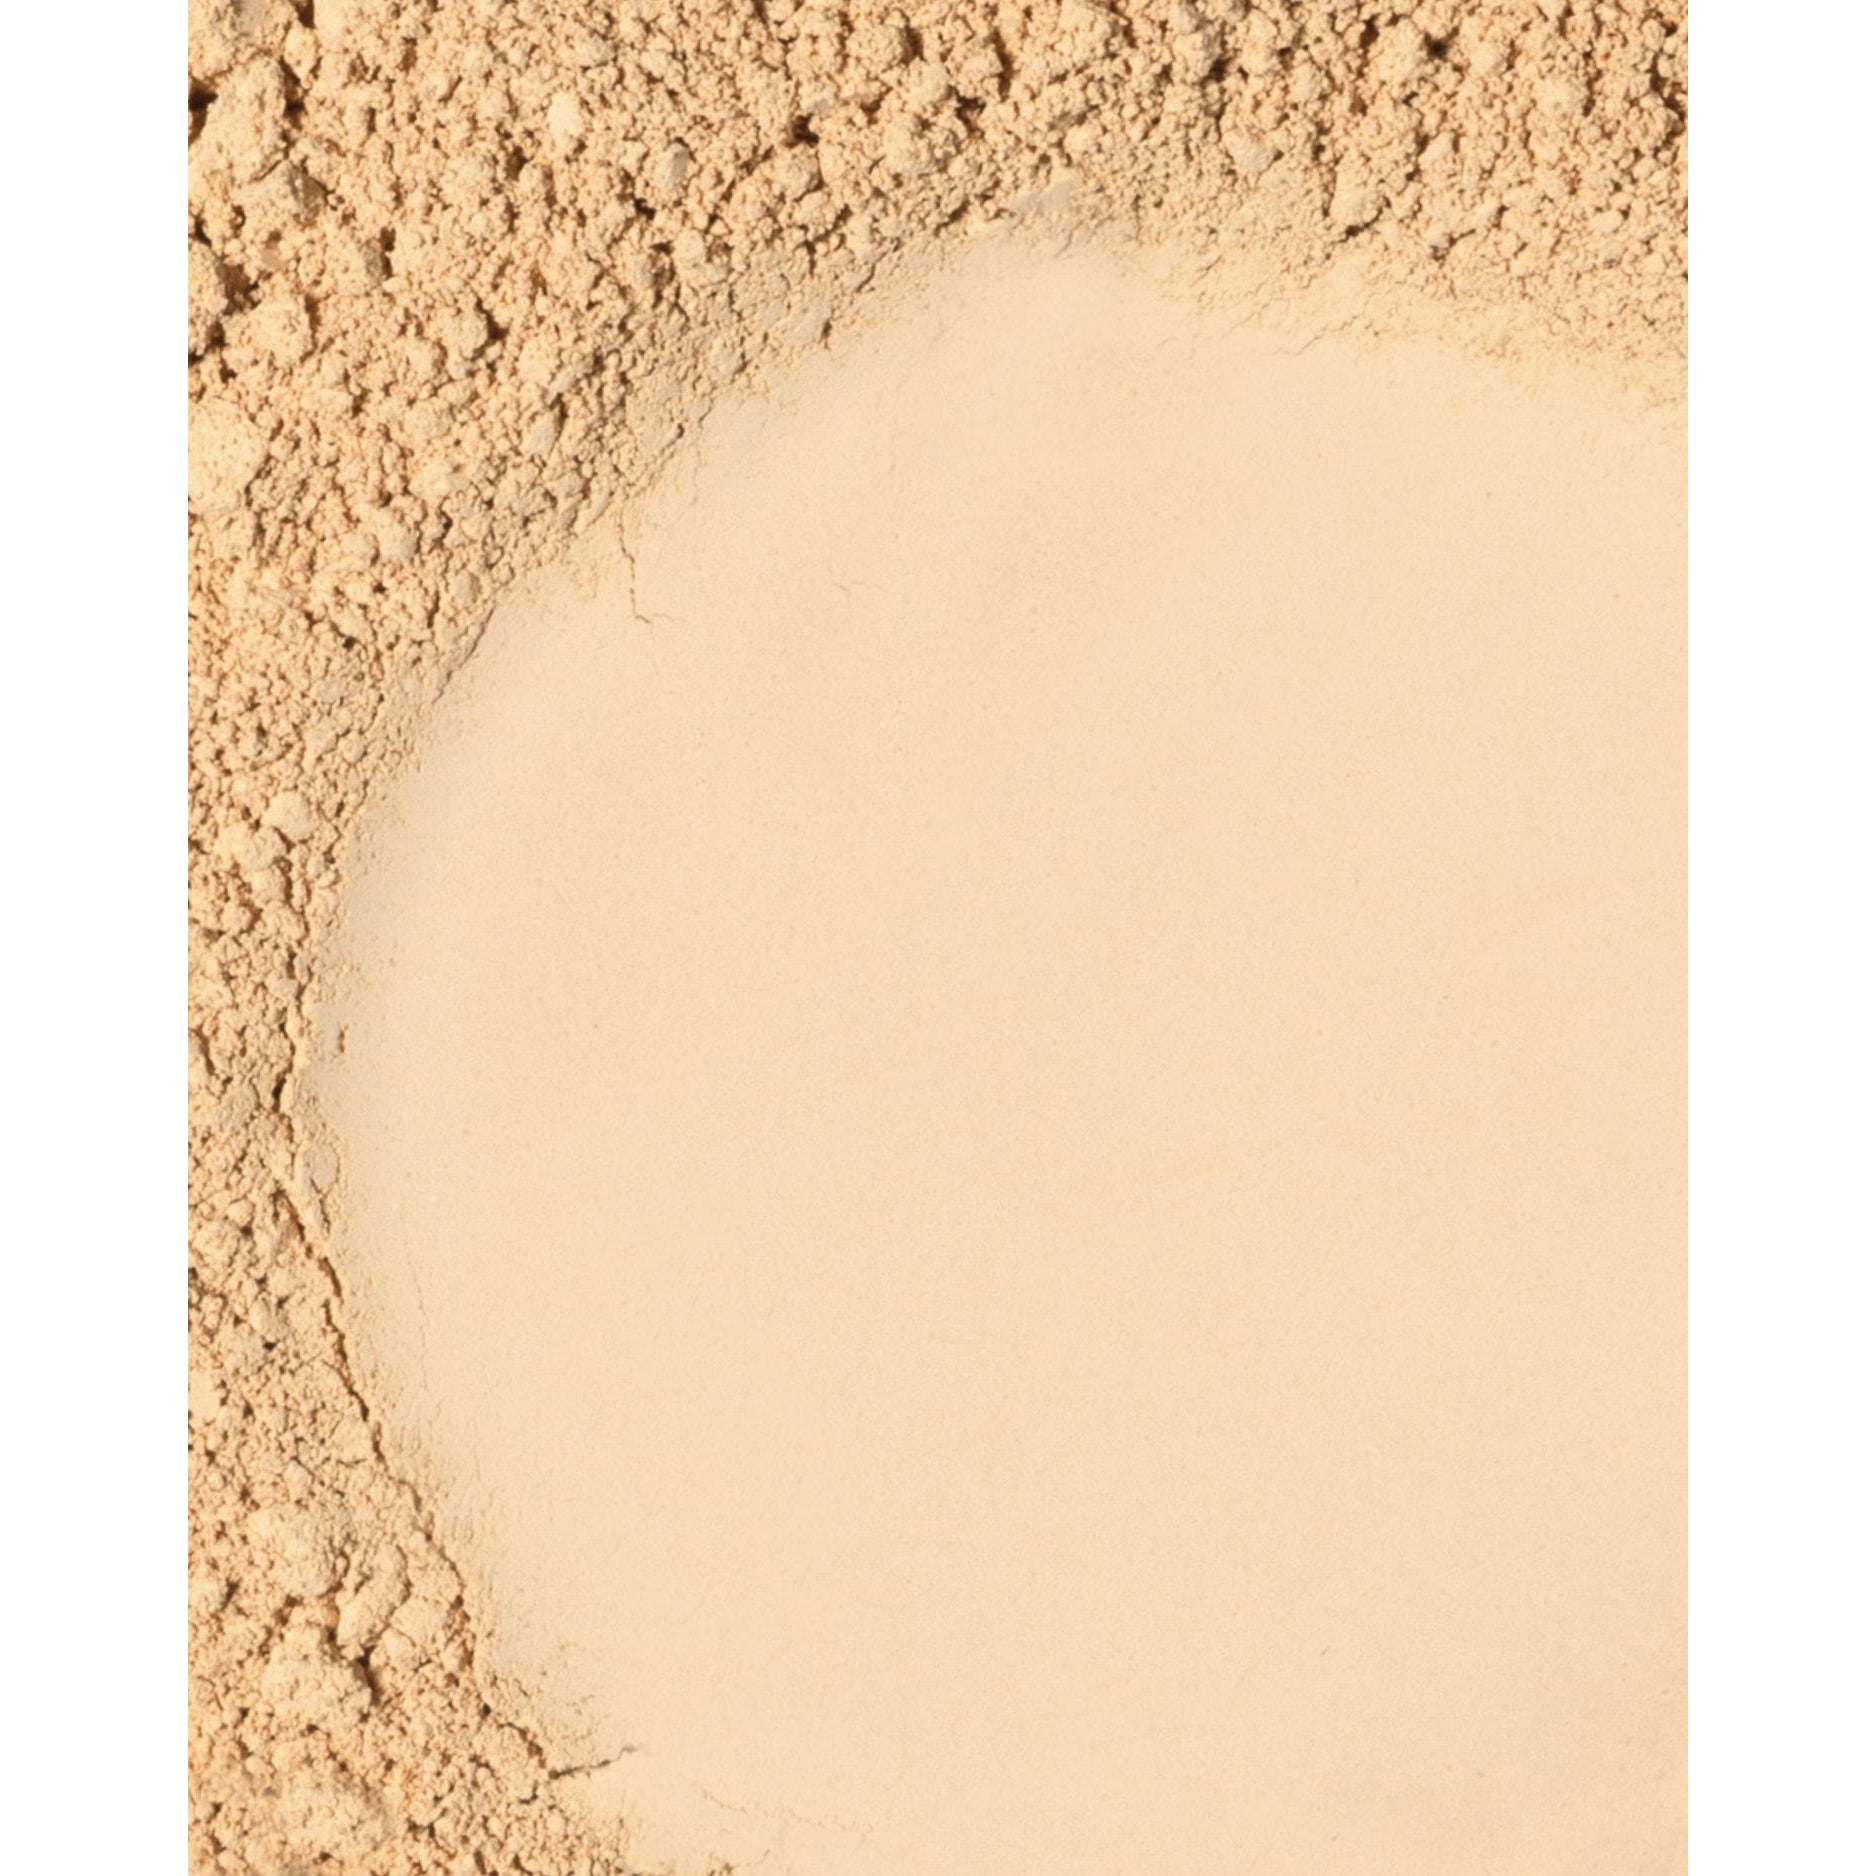 Gorgeous - Omiana Loose Powder Mineral Foundation No Titanium Dioxide and No Mica